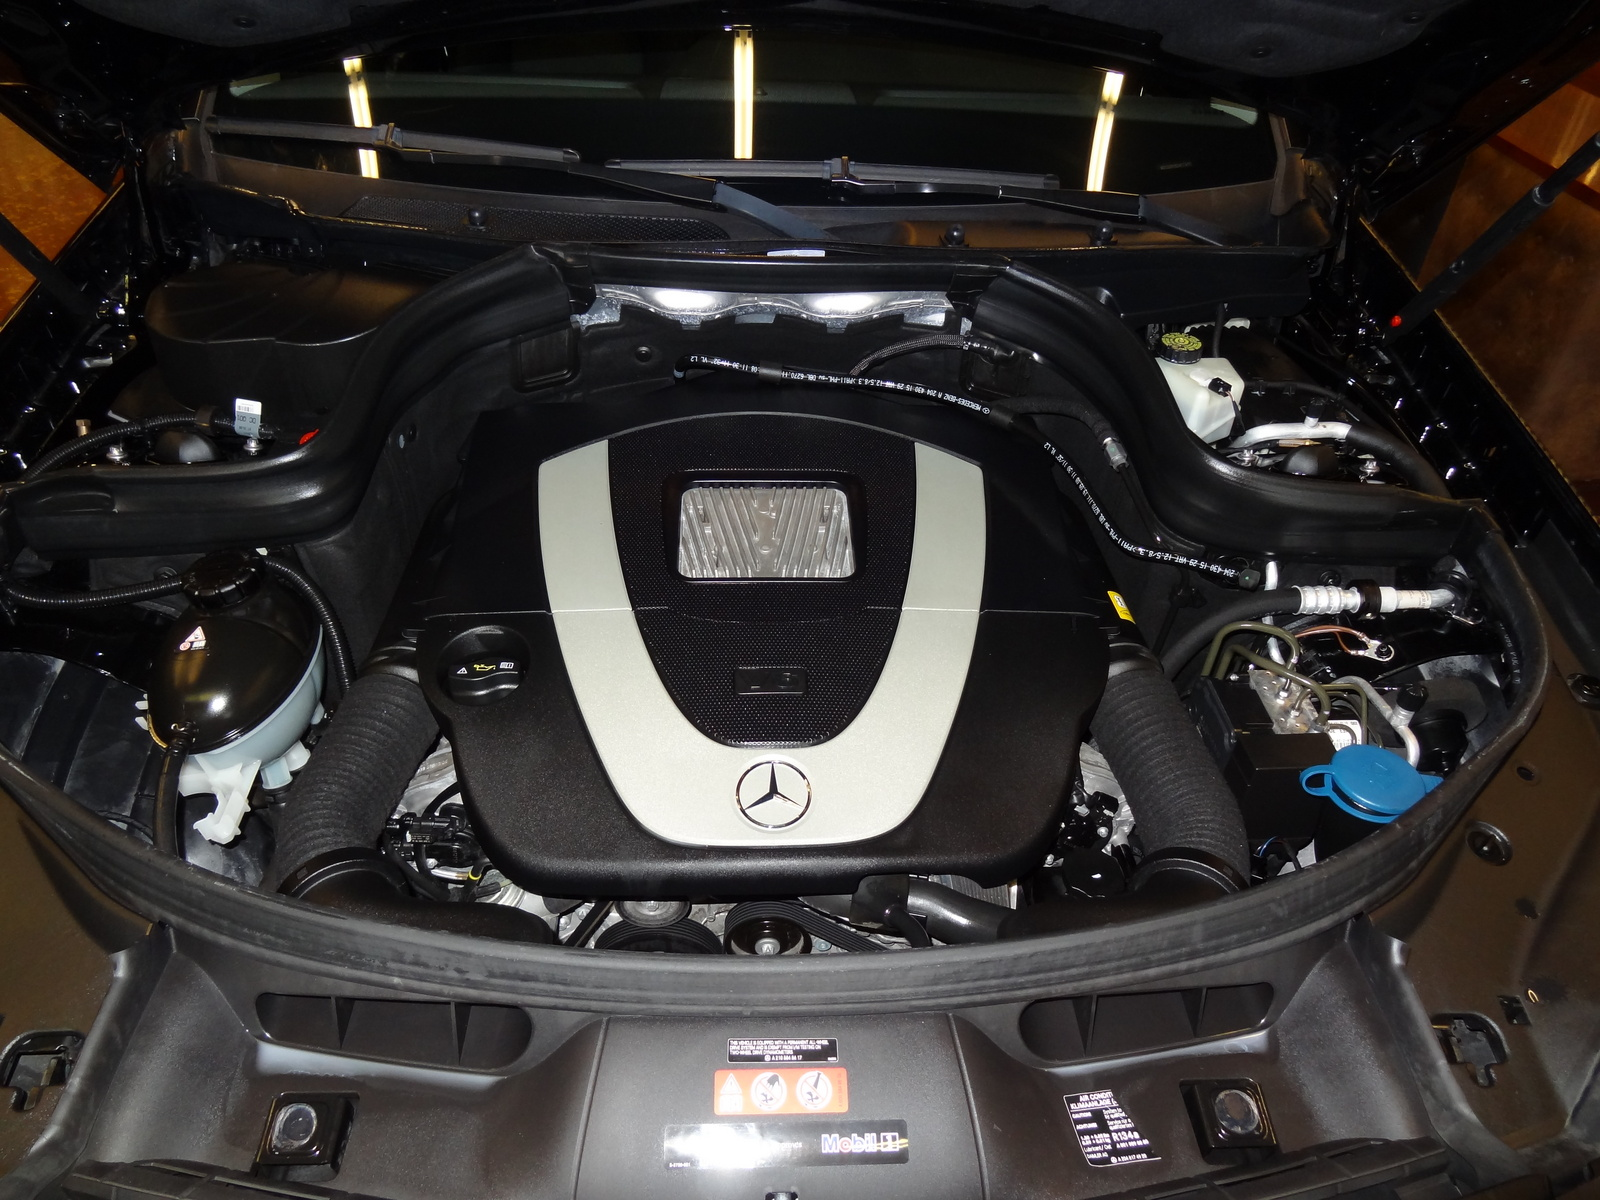 2015 mercedes benz glk class spied images car price and specs - Mercedes Glk 2015 Interior